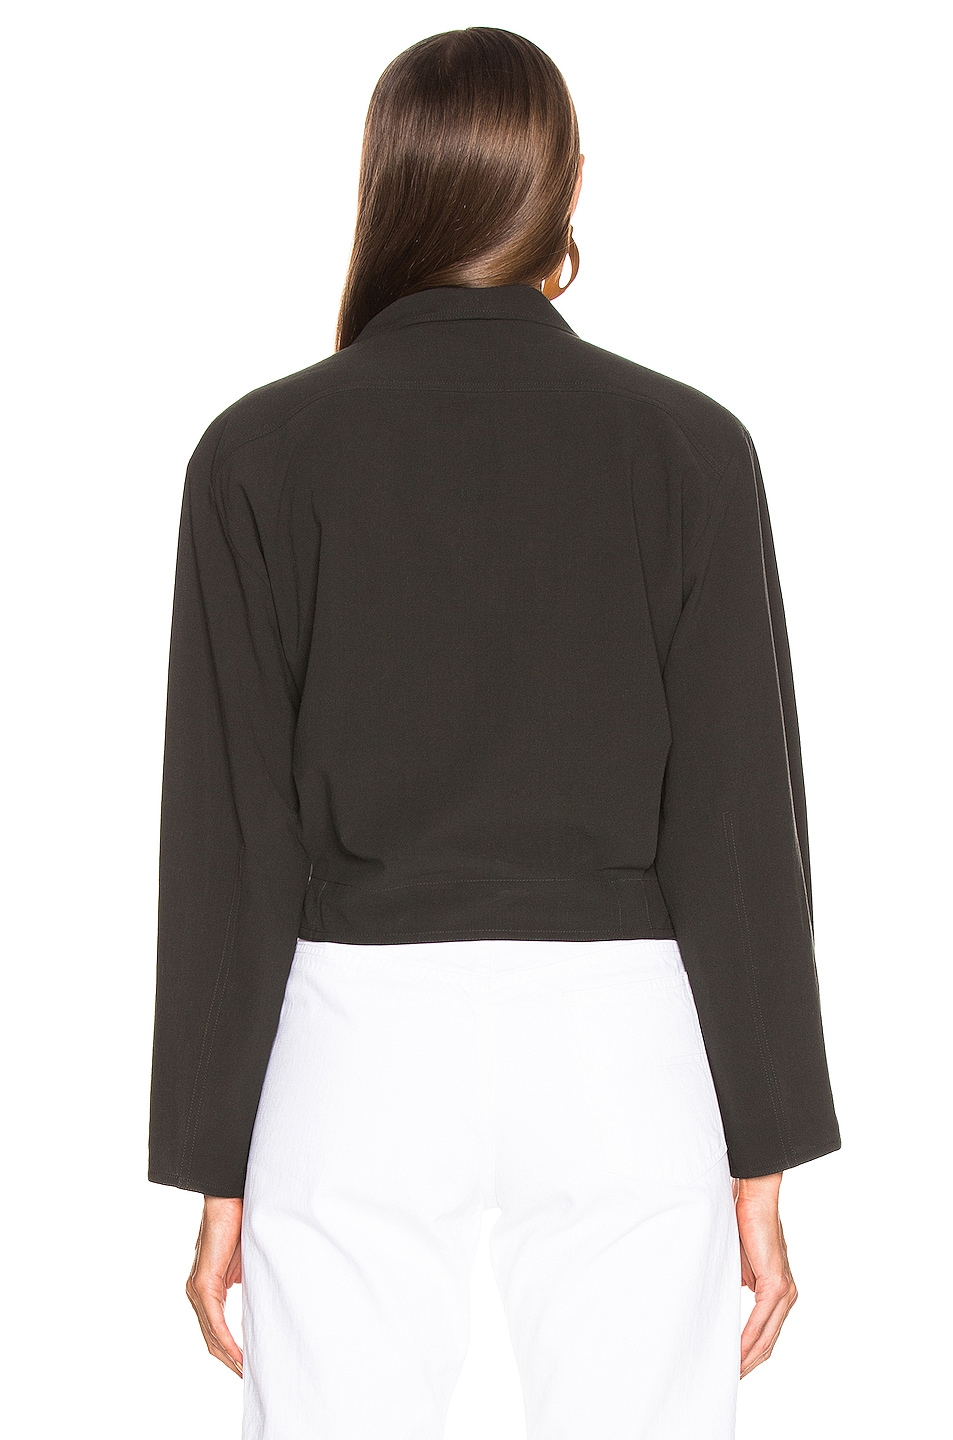 Image 4 of Lemaire Knotted Top in Black Olive Green